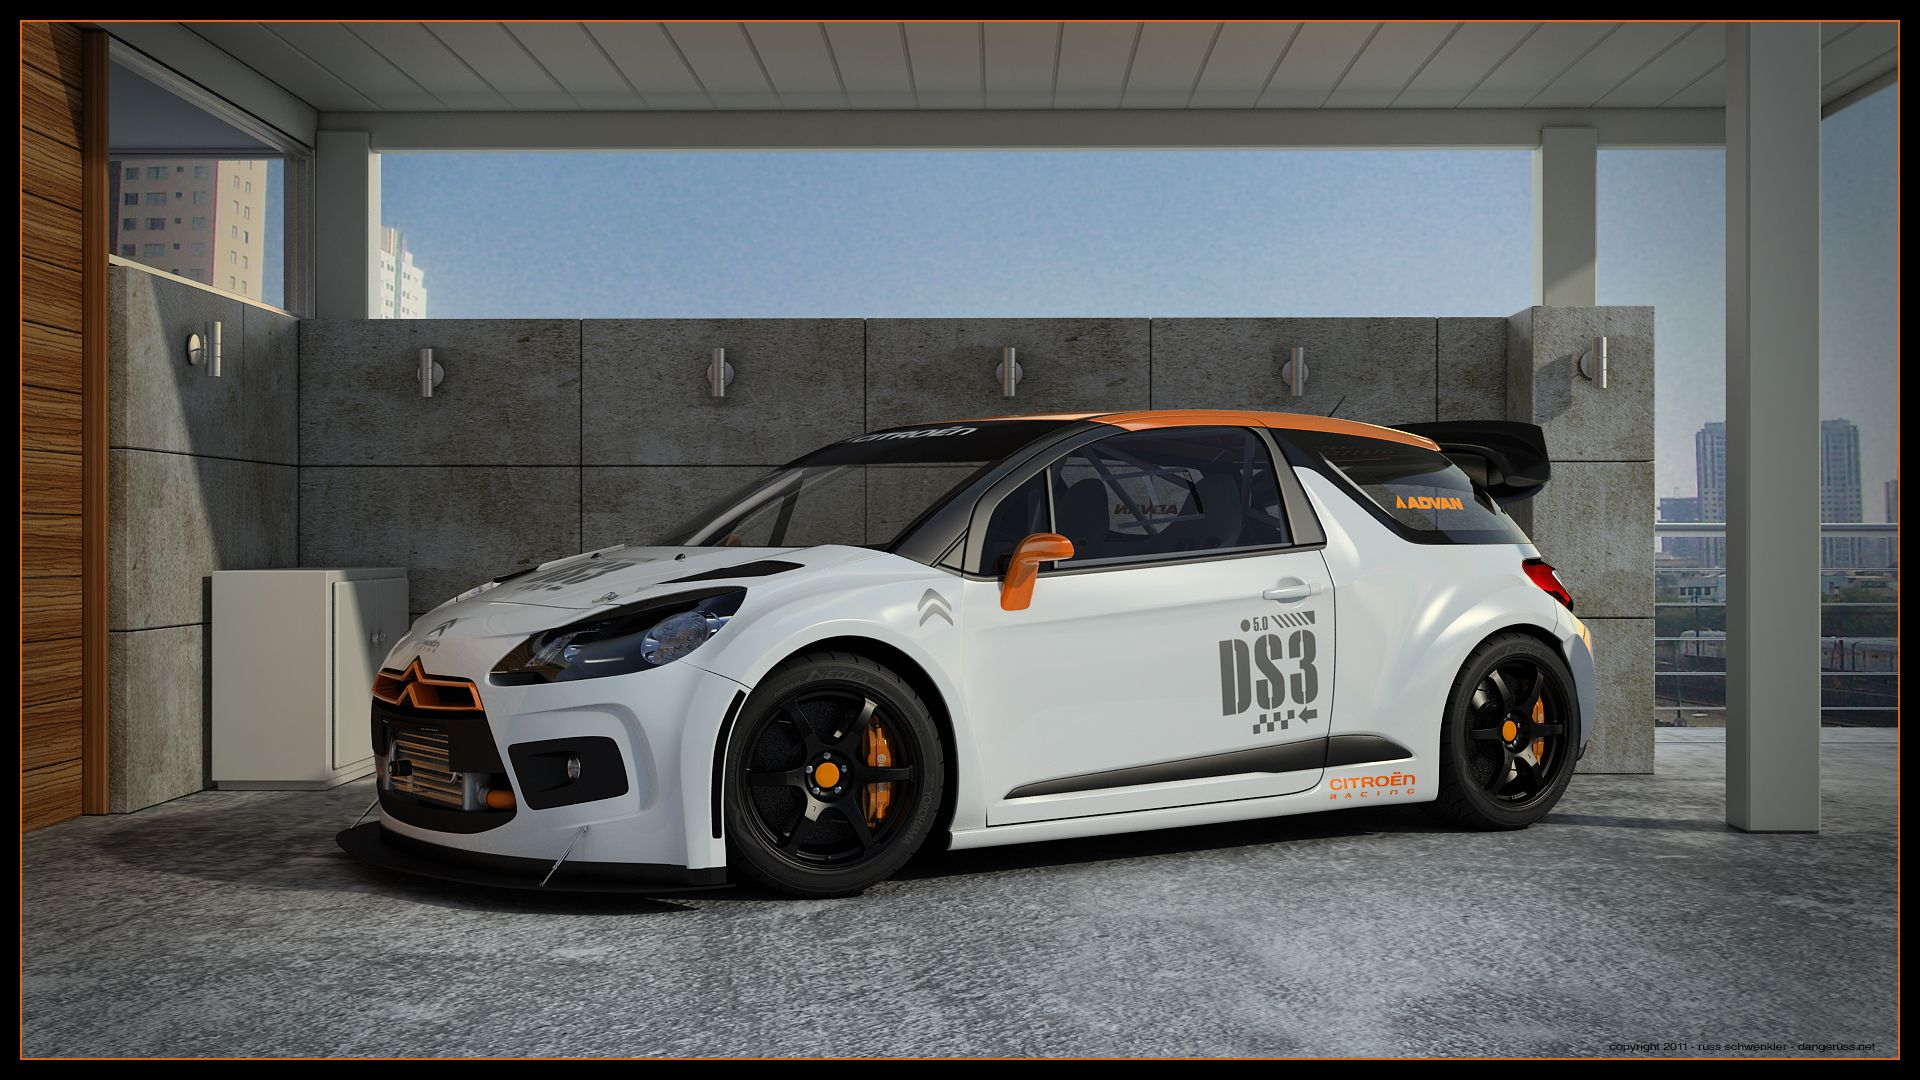 citroen ds3 racing carport by on deviantart cars pinterest. Black Bedroom Furniture Sets. Home Design Ideas